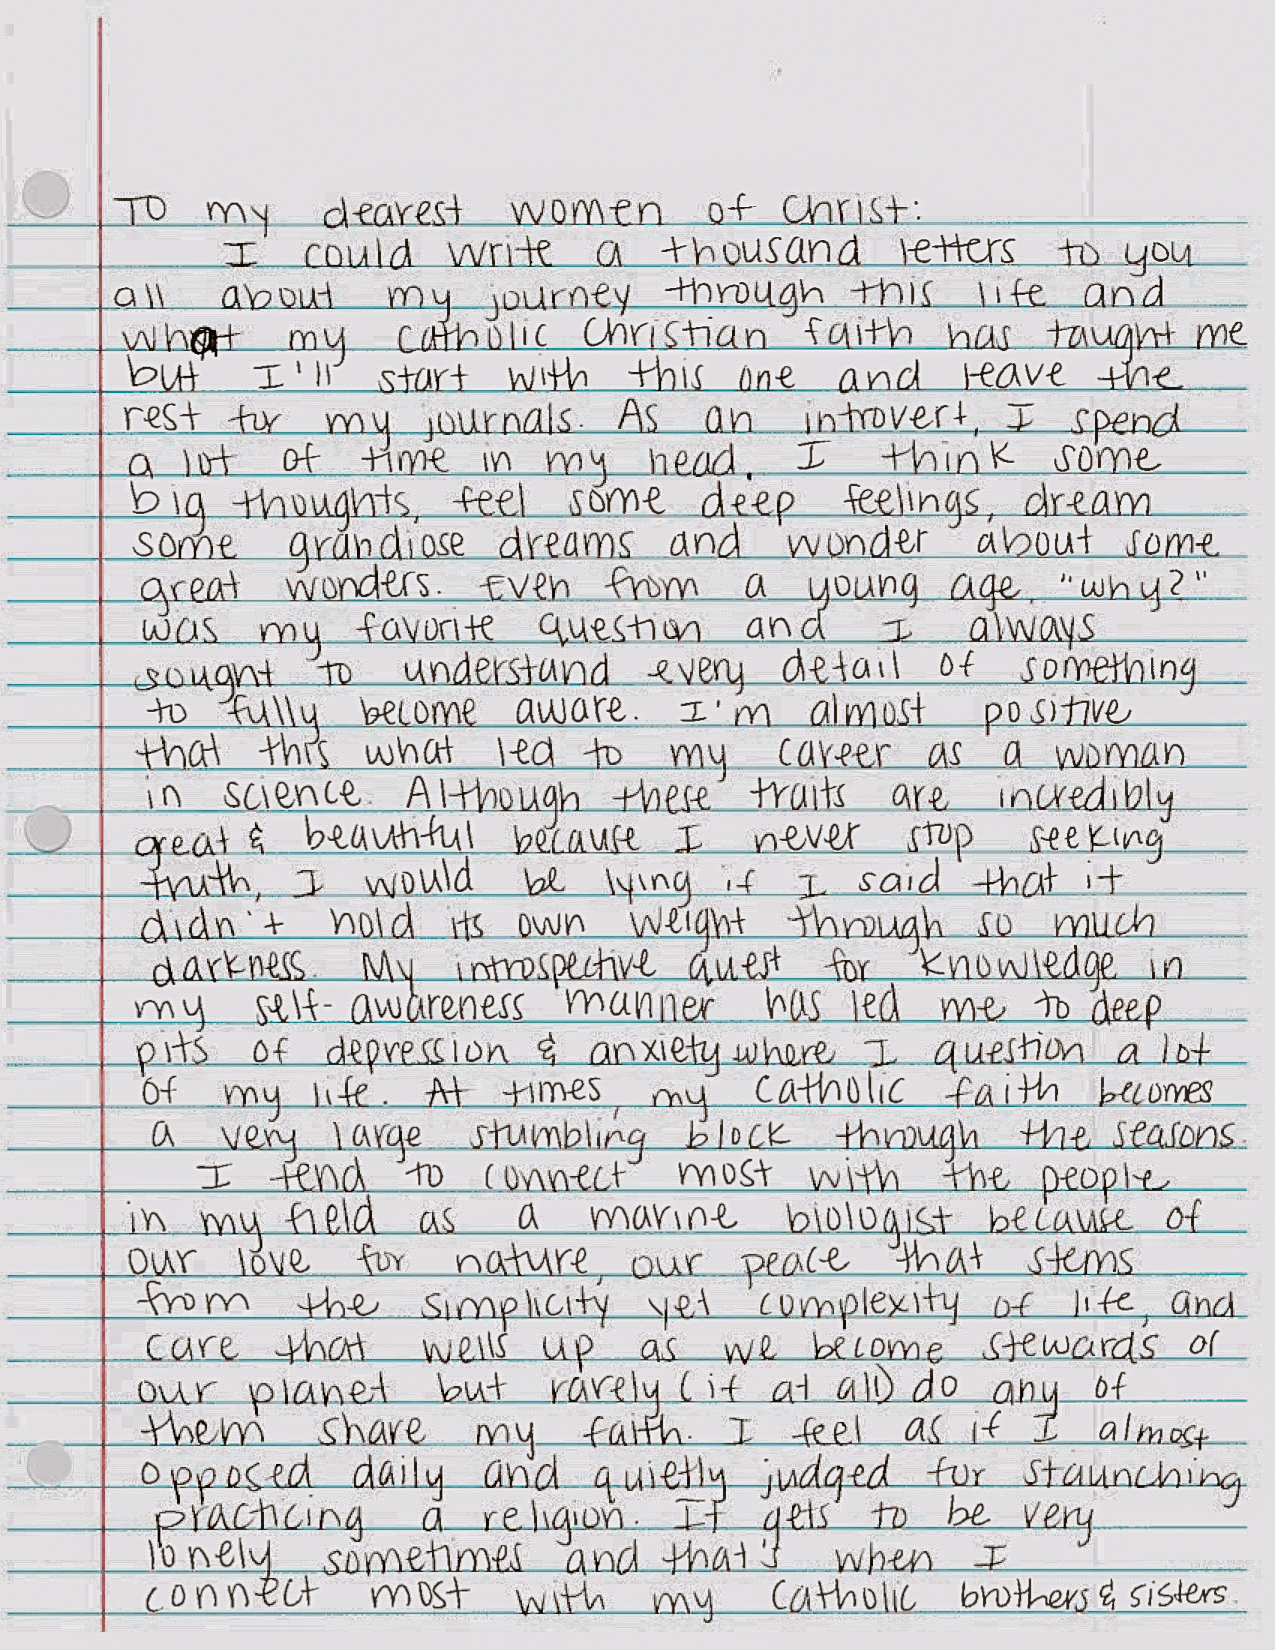 The-Catholic-Woman Letters-34.jpg